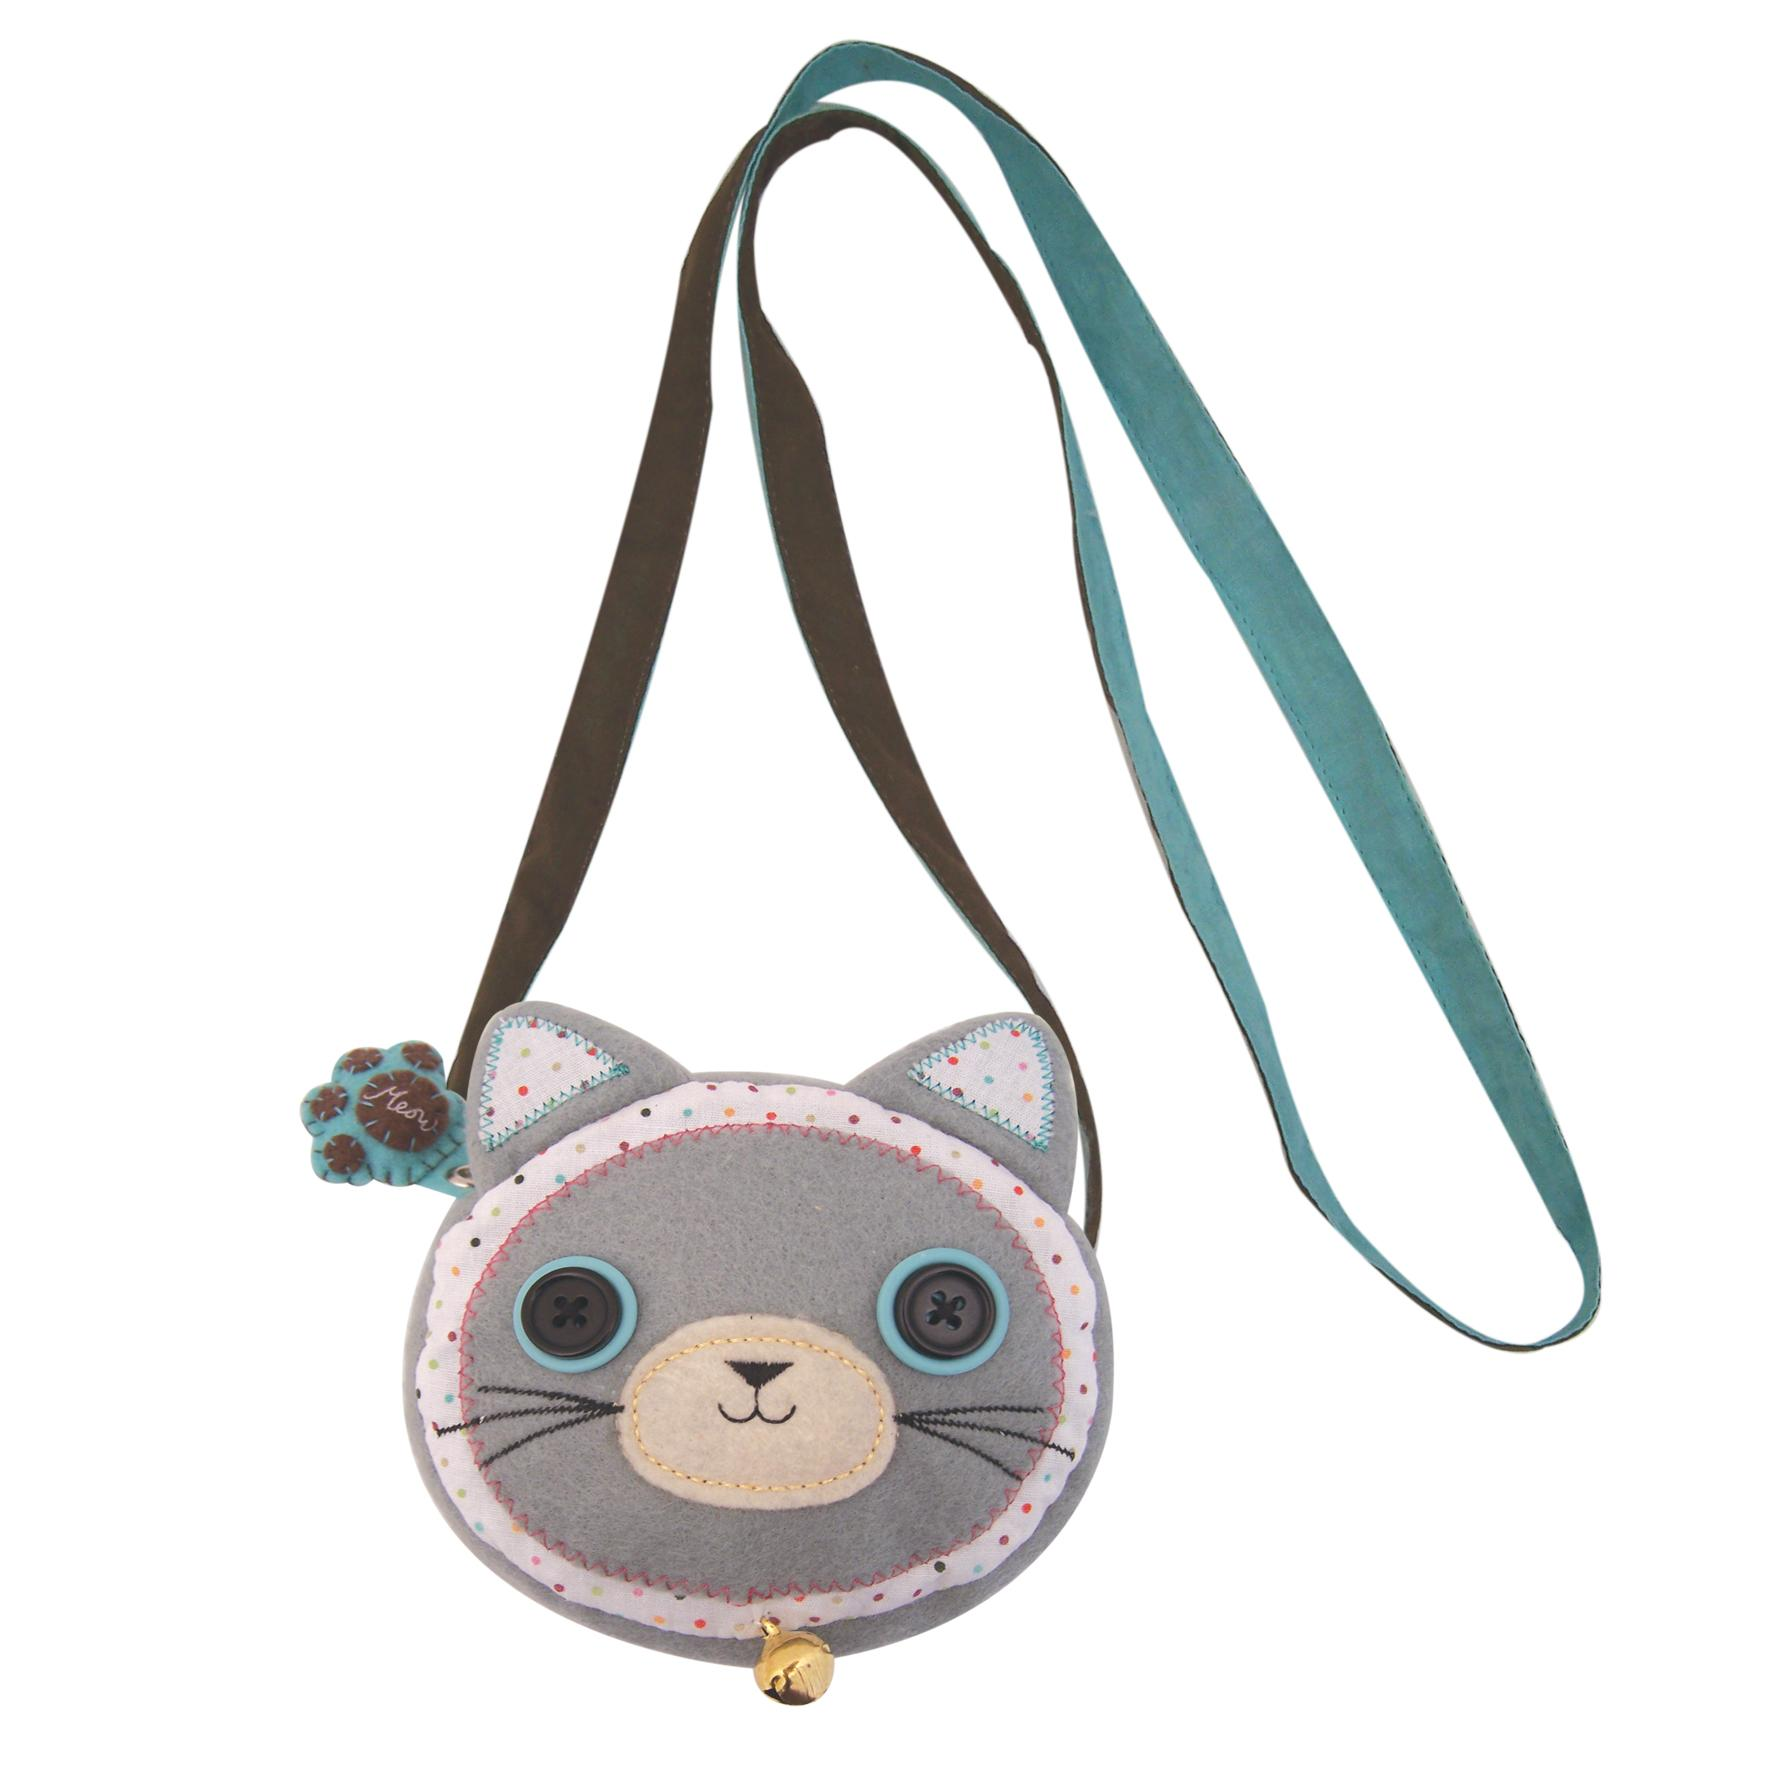 Sugar Coated Kitty Cat Mini Bag By Disaster Designs